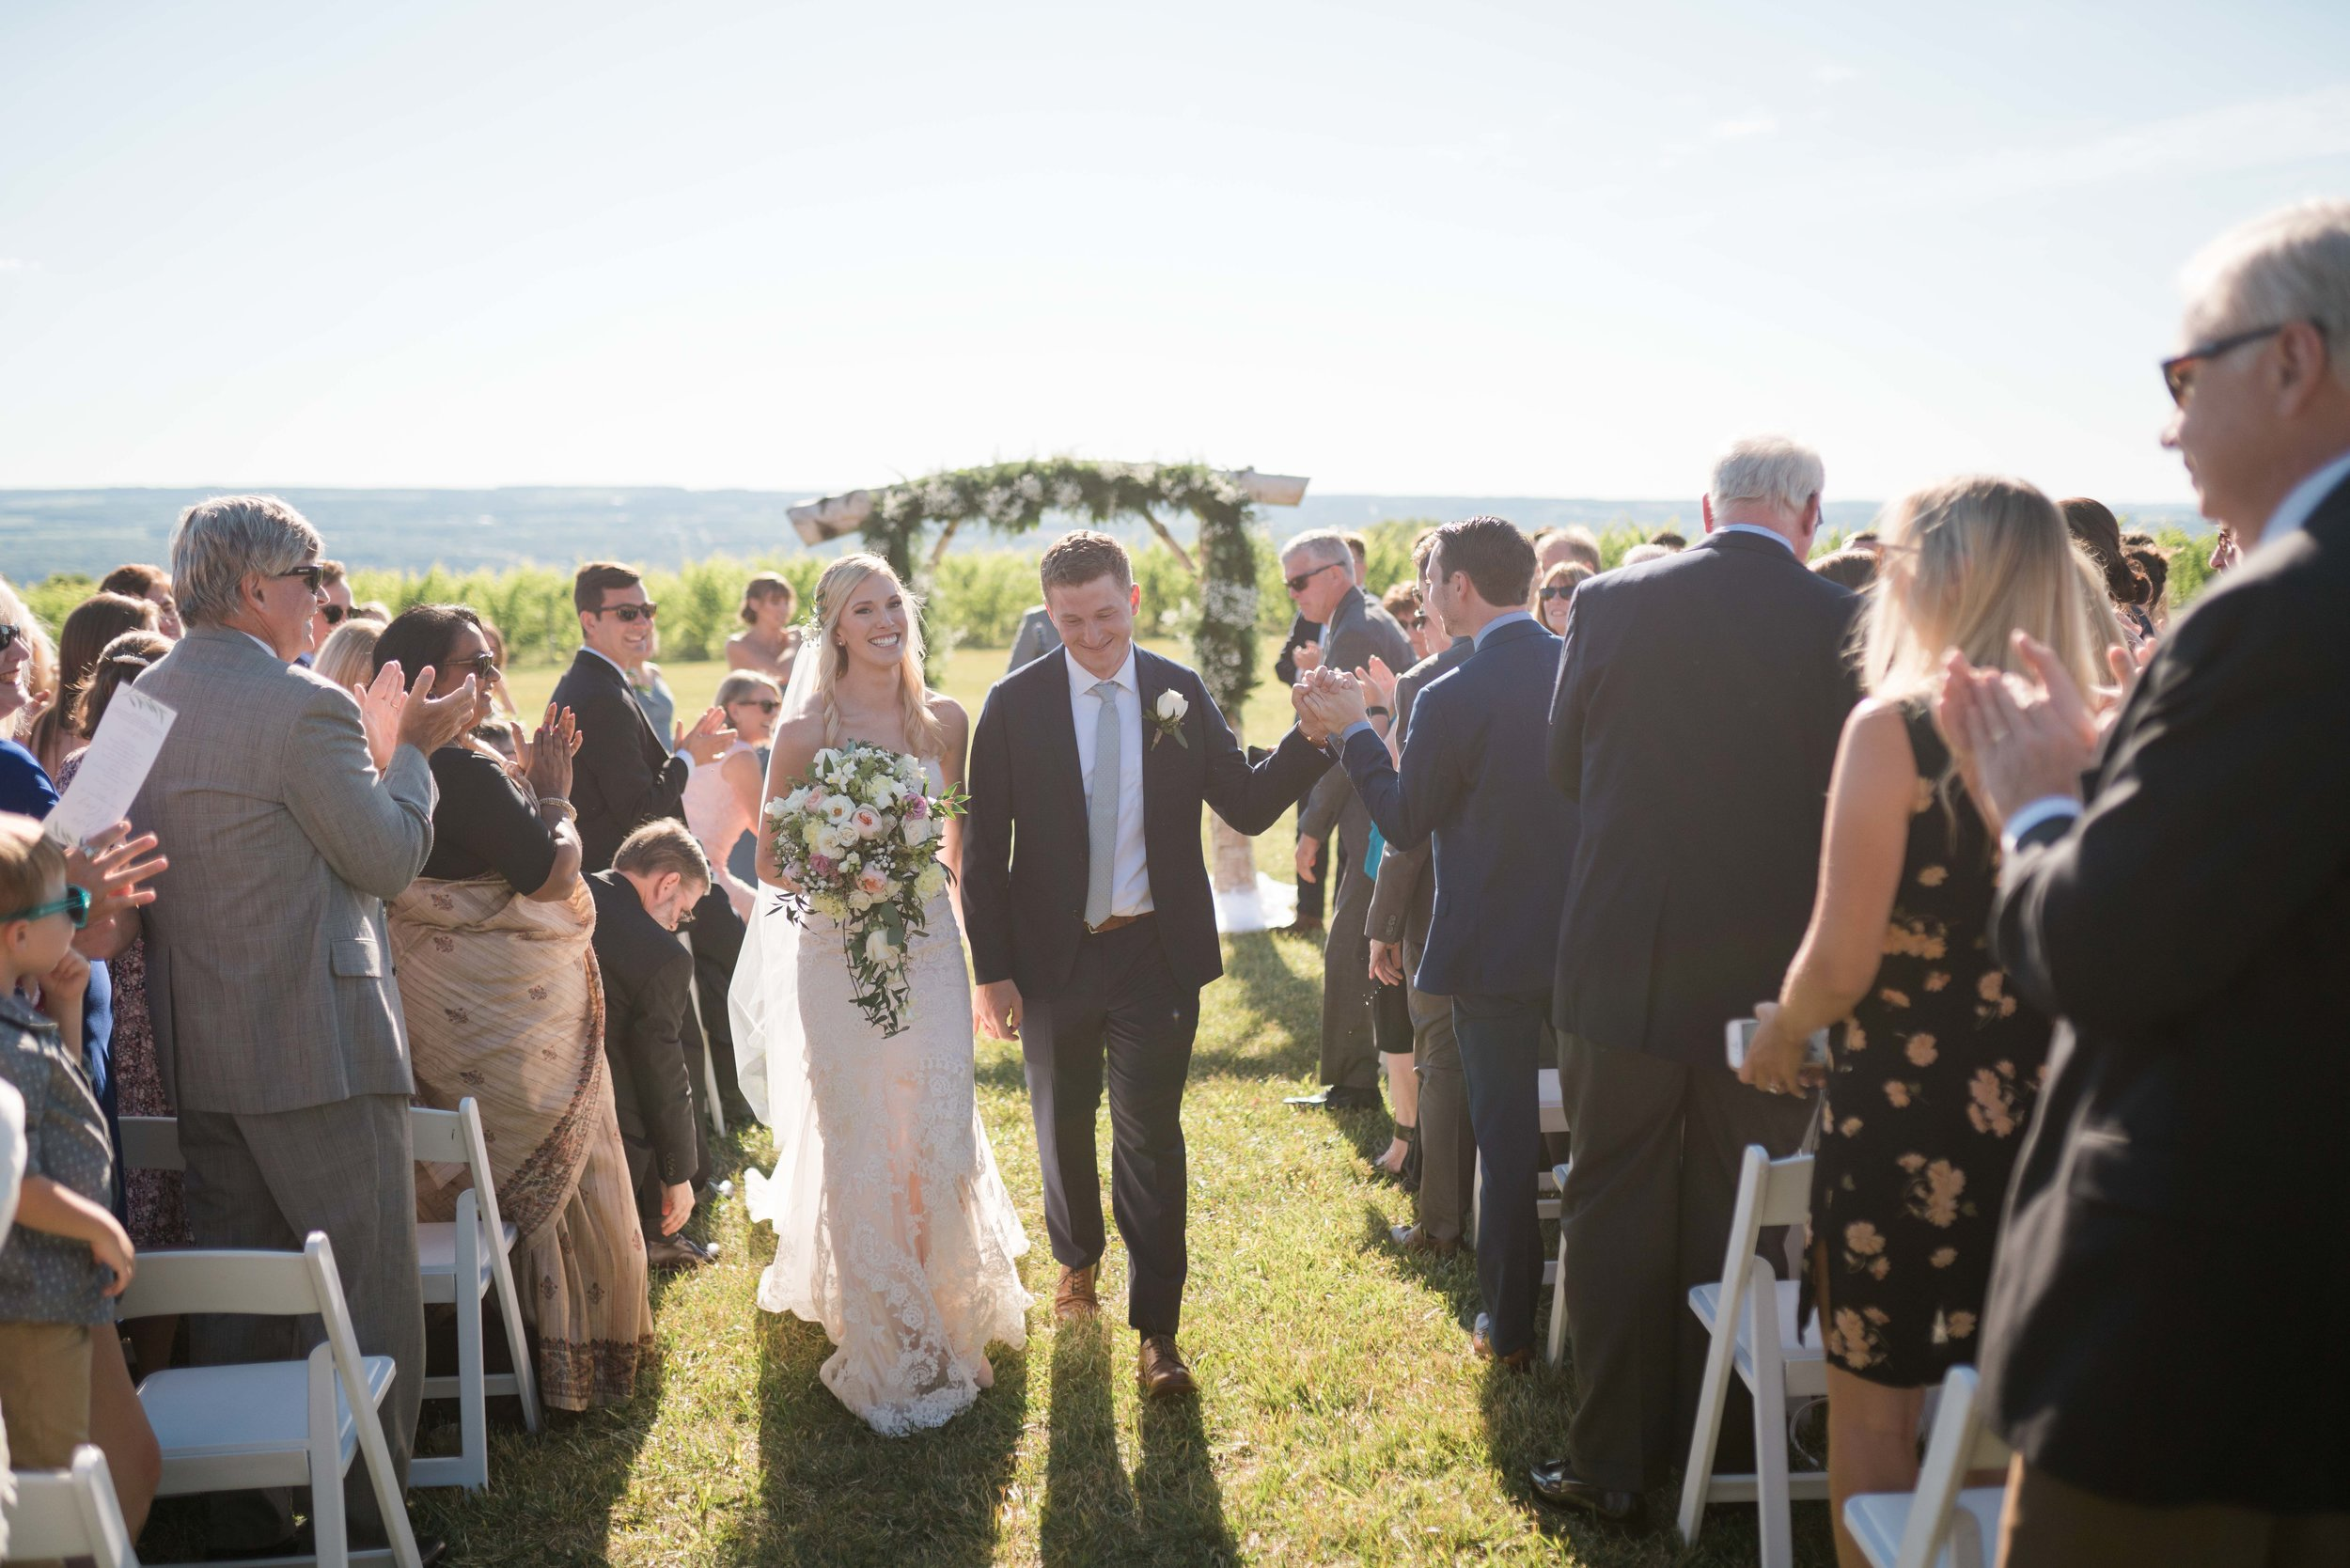 Wedding Photography at Wagner Vineyards Ginny Lee Cafe Finger Lakes by Stefan Ludwig Photography-64.jpg